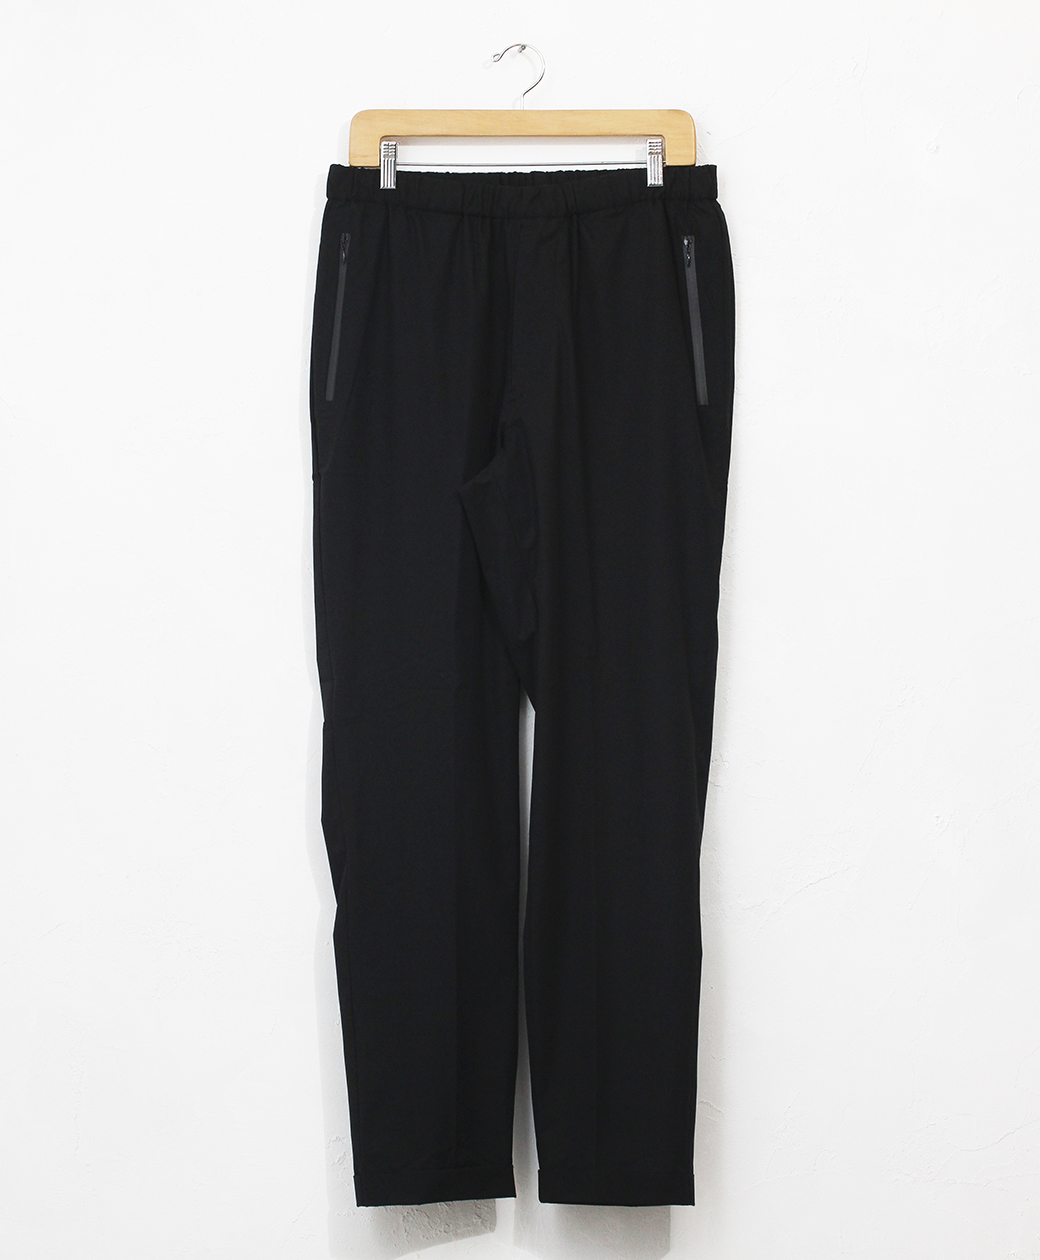 DESCENTE 2020 SPRING&SUMMER SALE PACKABLE PANTS(BLK)